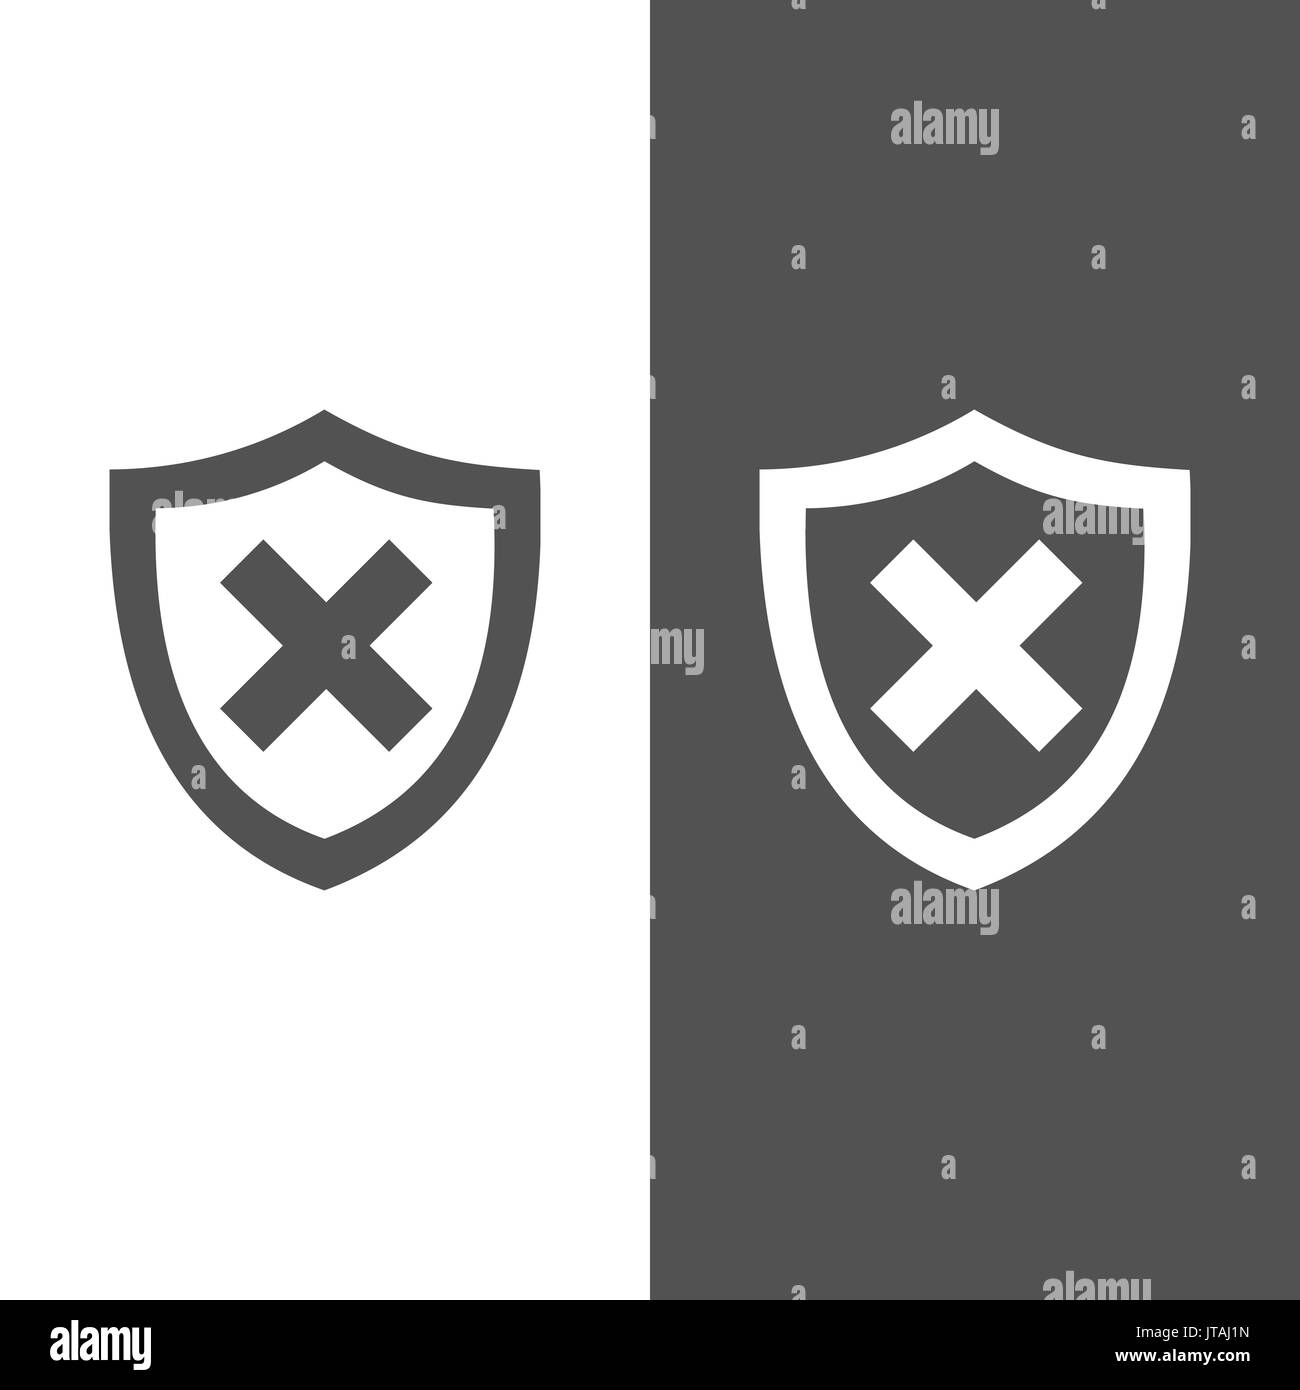 Unprotected shield icon on black and white background - Stock Image